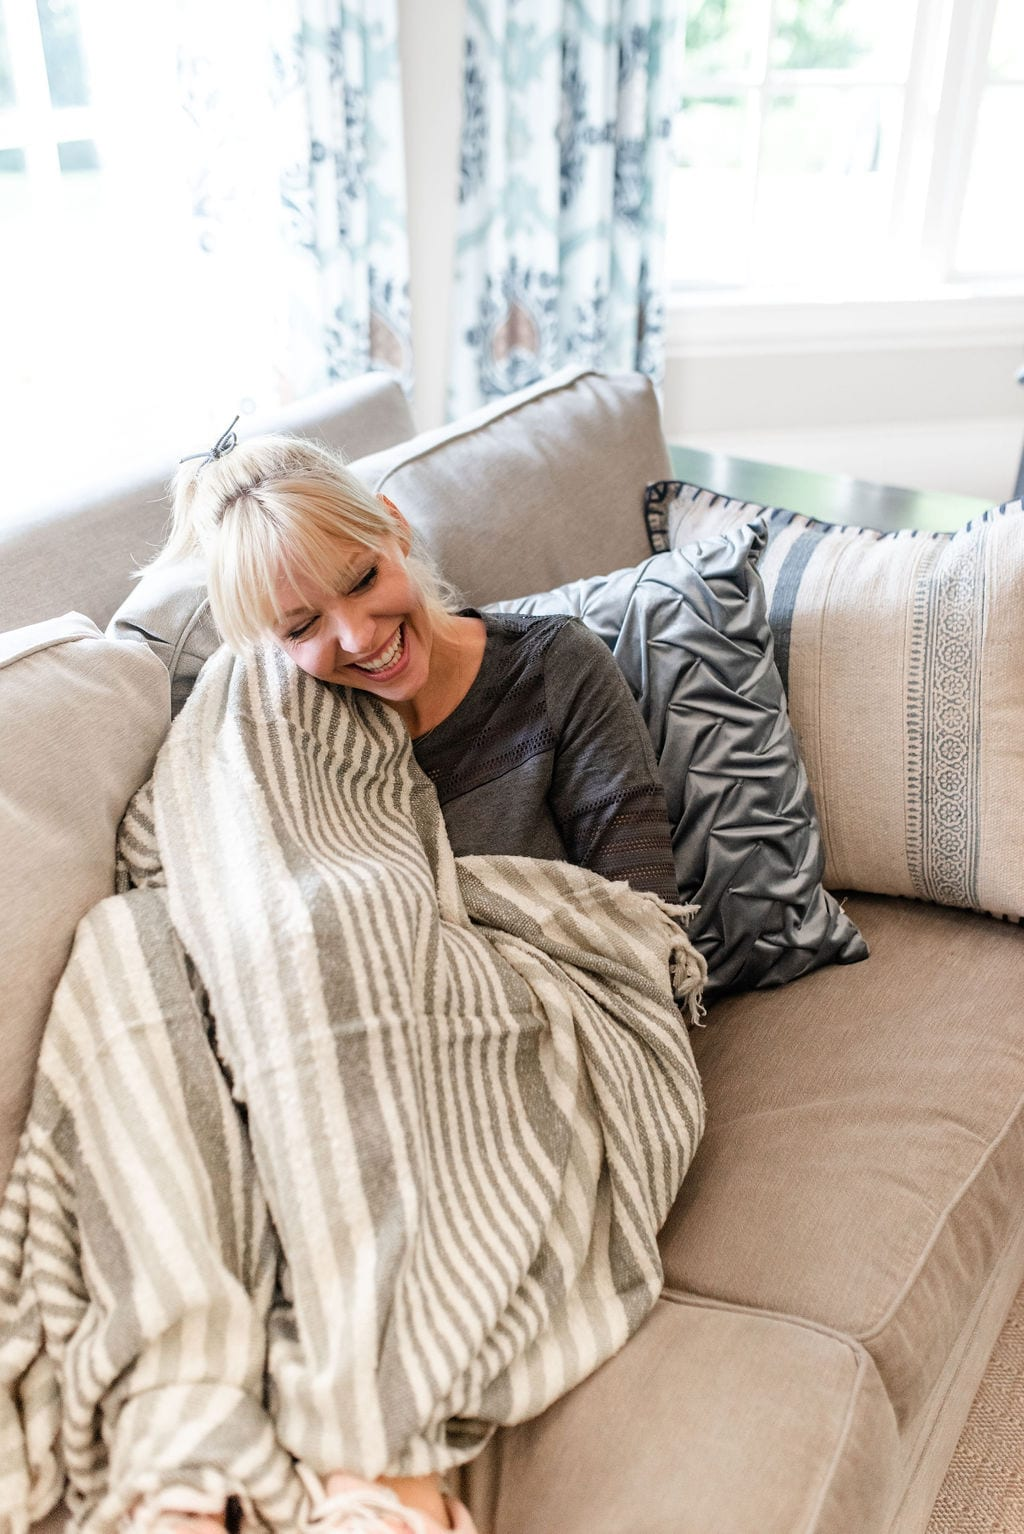 Wayfair taupe throw blankets. Super sot summer throw blanket in neutral stripe colors.